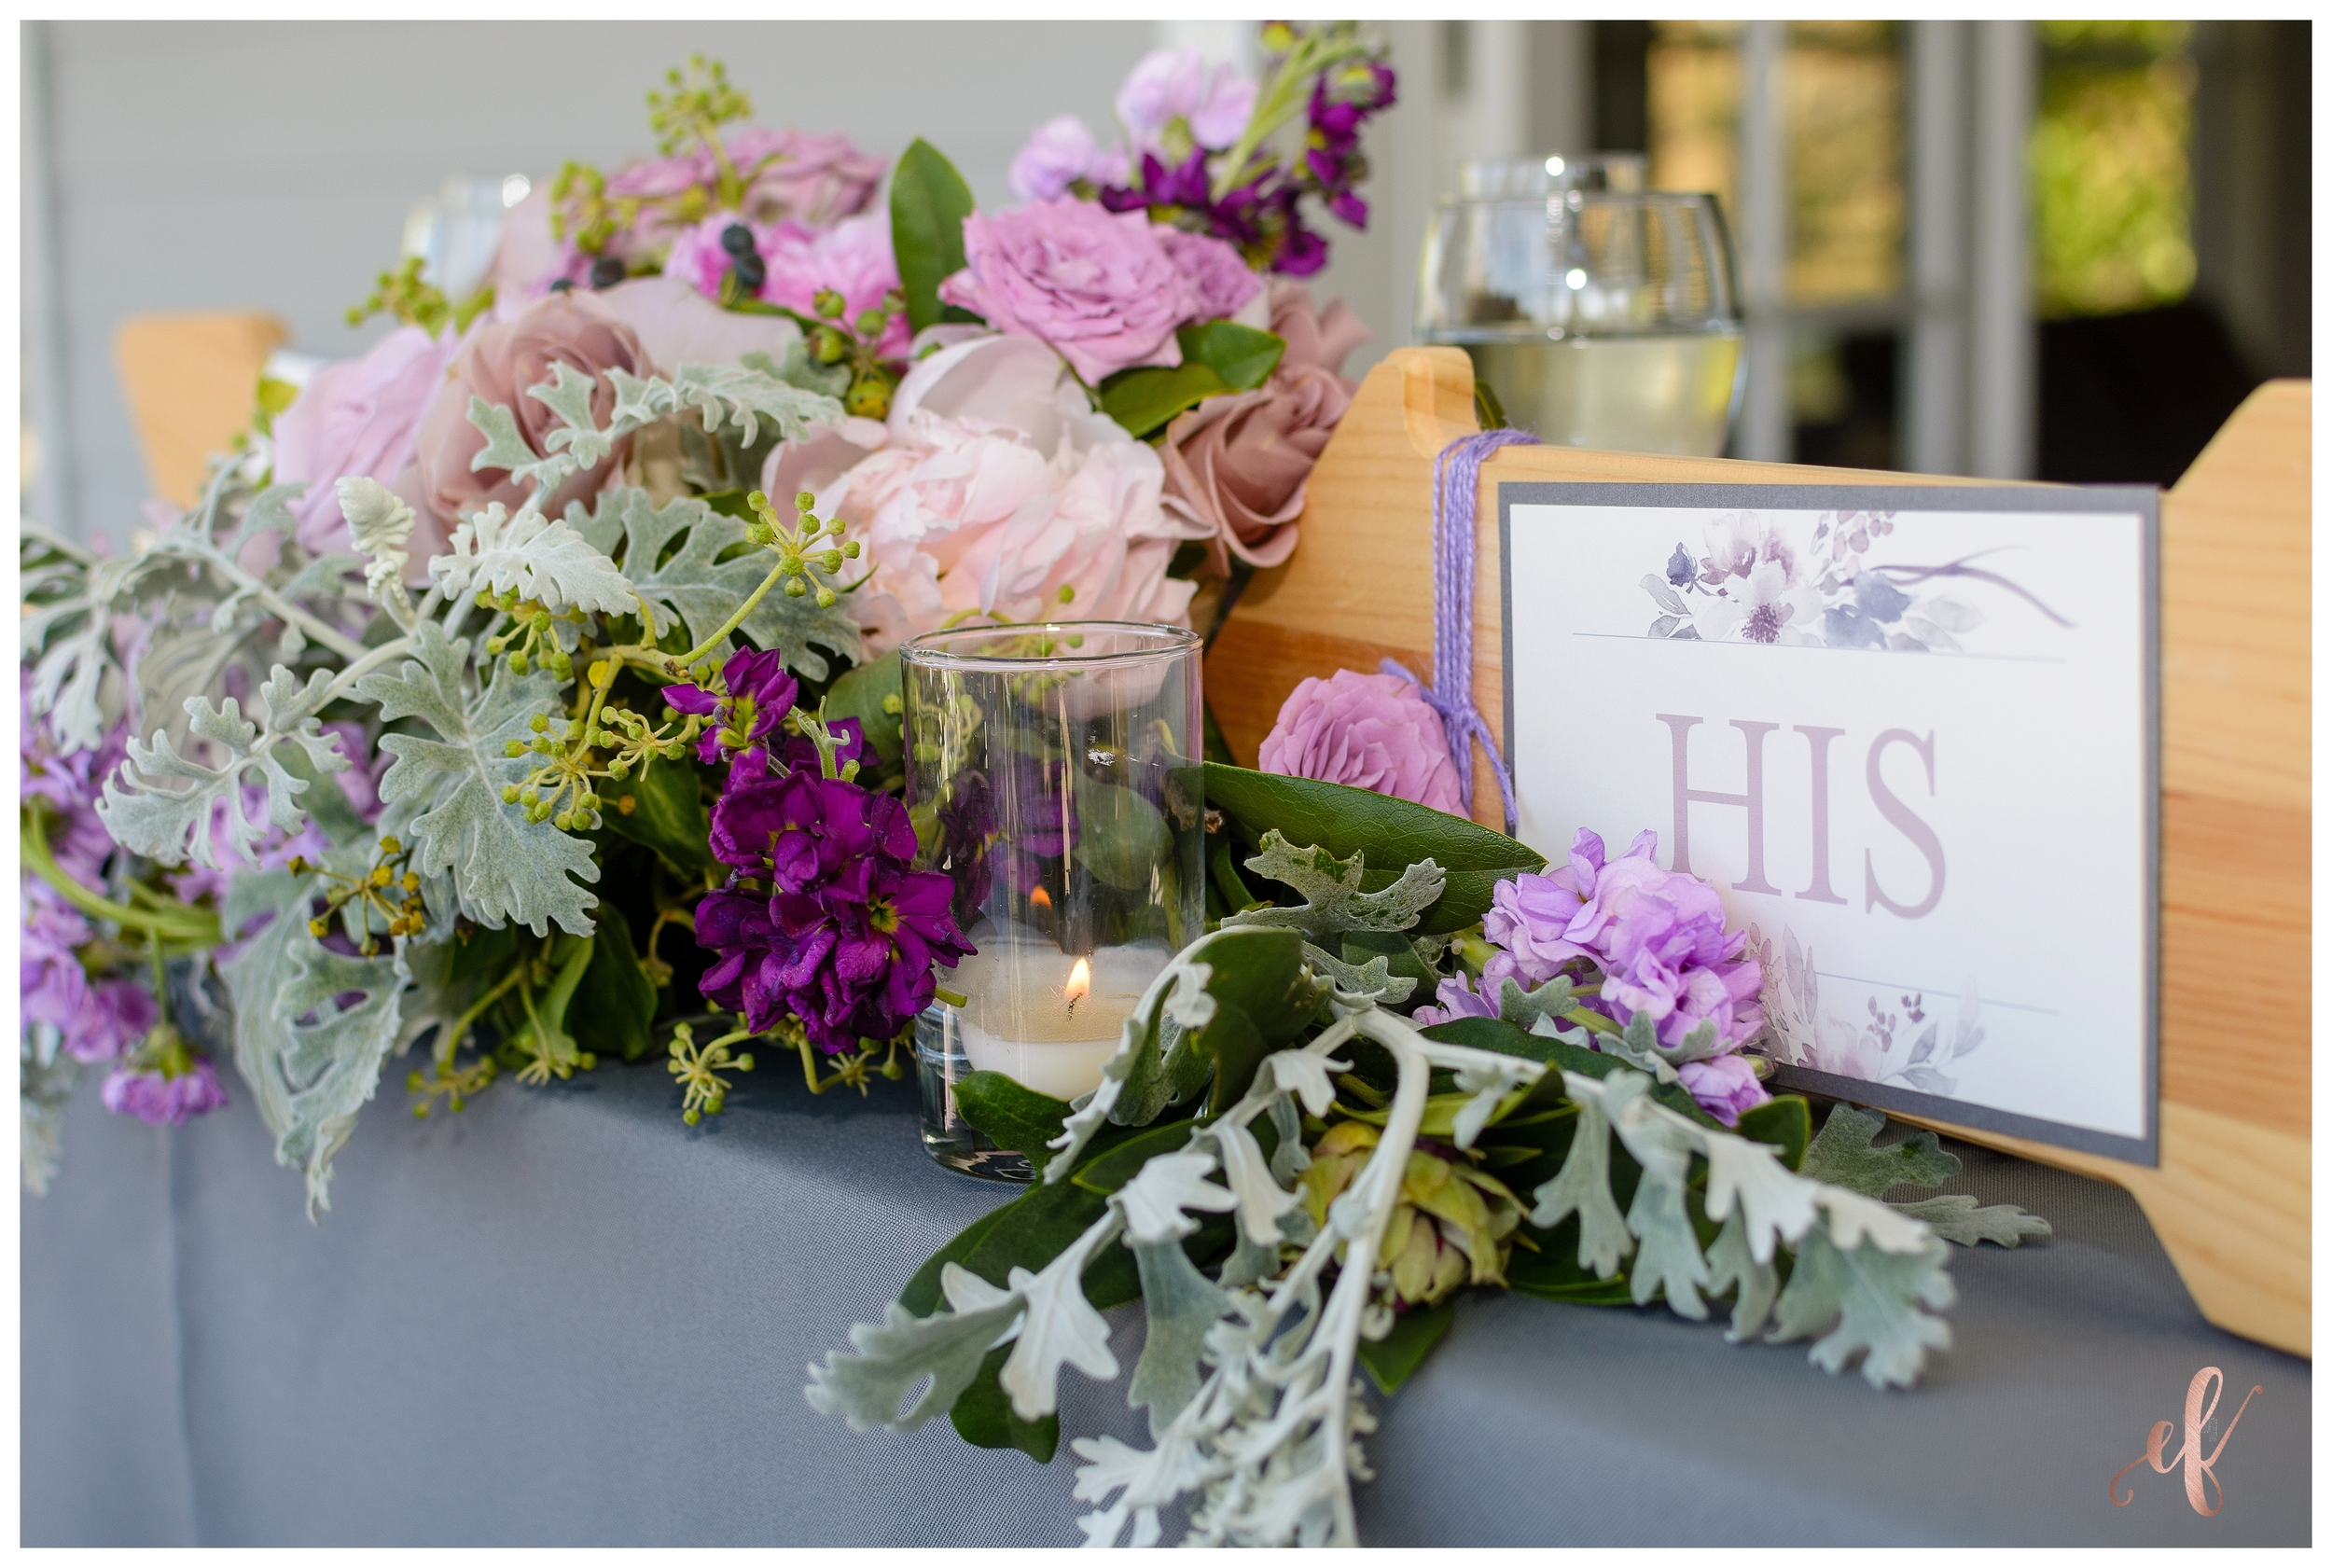 San Diego Wedding Photographer | Lila Canyon Estate | Ernie & Fiona Photography | Cameillia Wedding Flowers